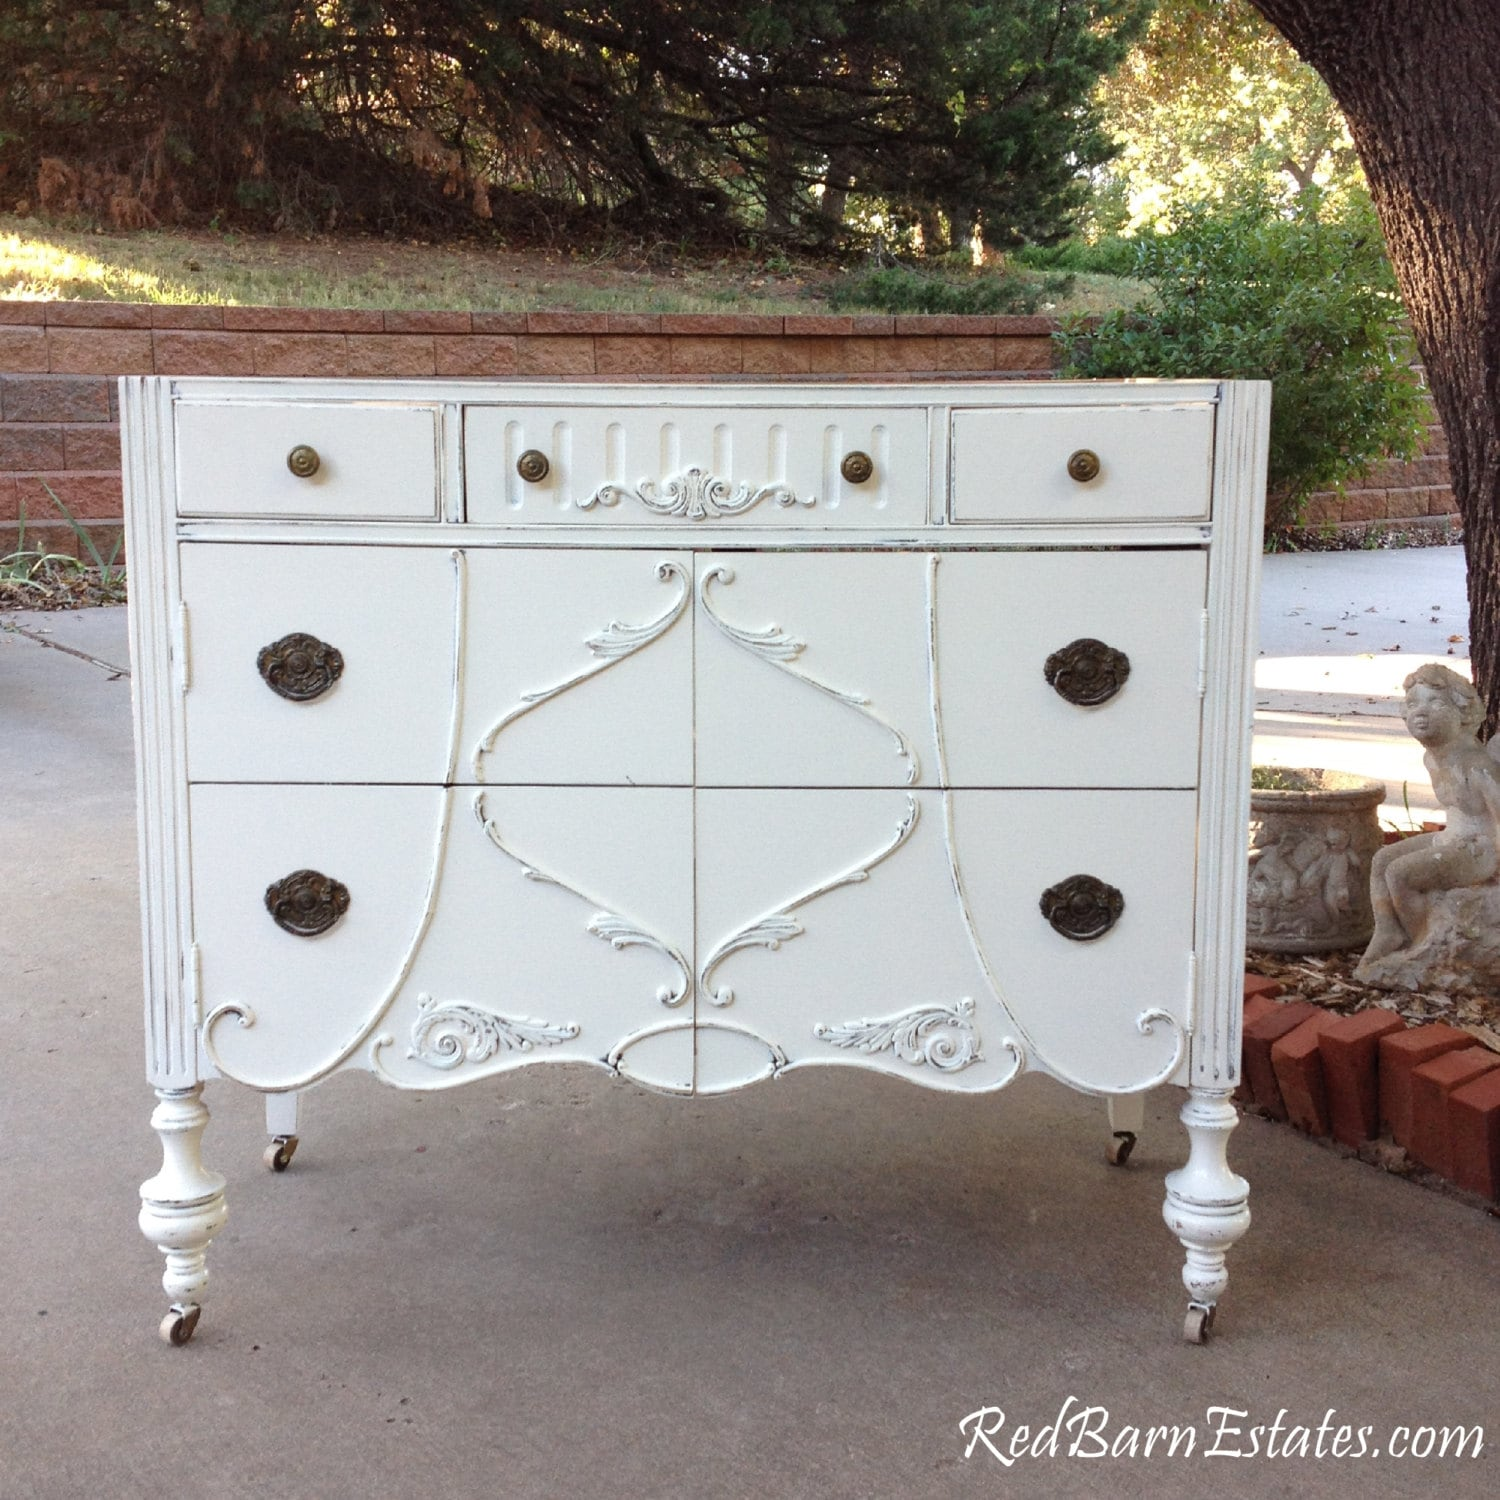 Antique BATHROOM VANITY Dresser Custom Found & Converted To Your